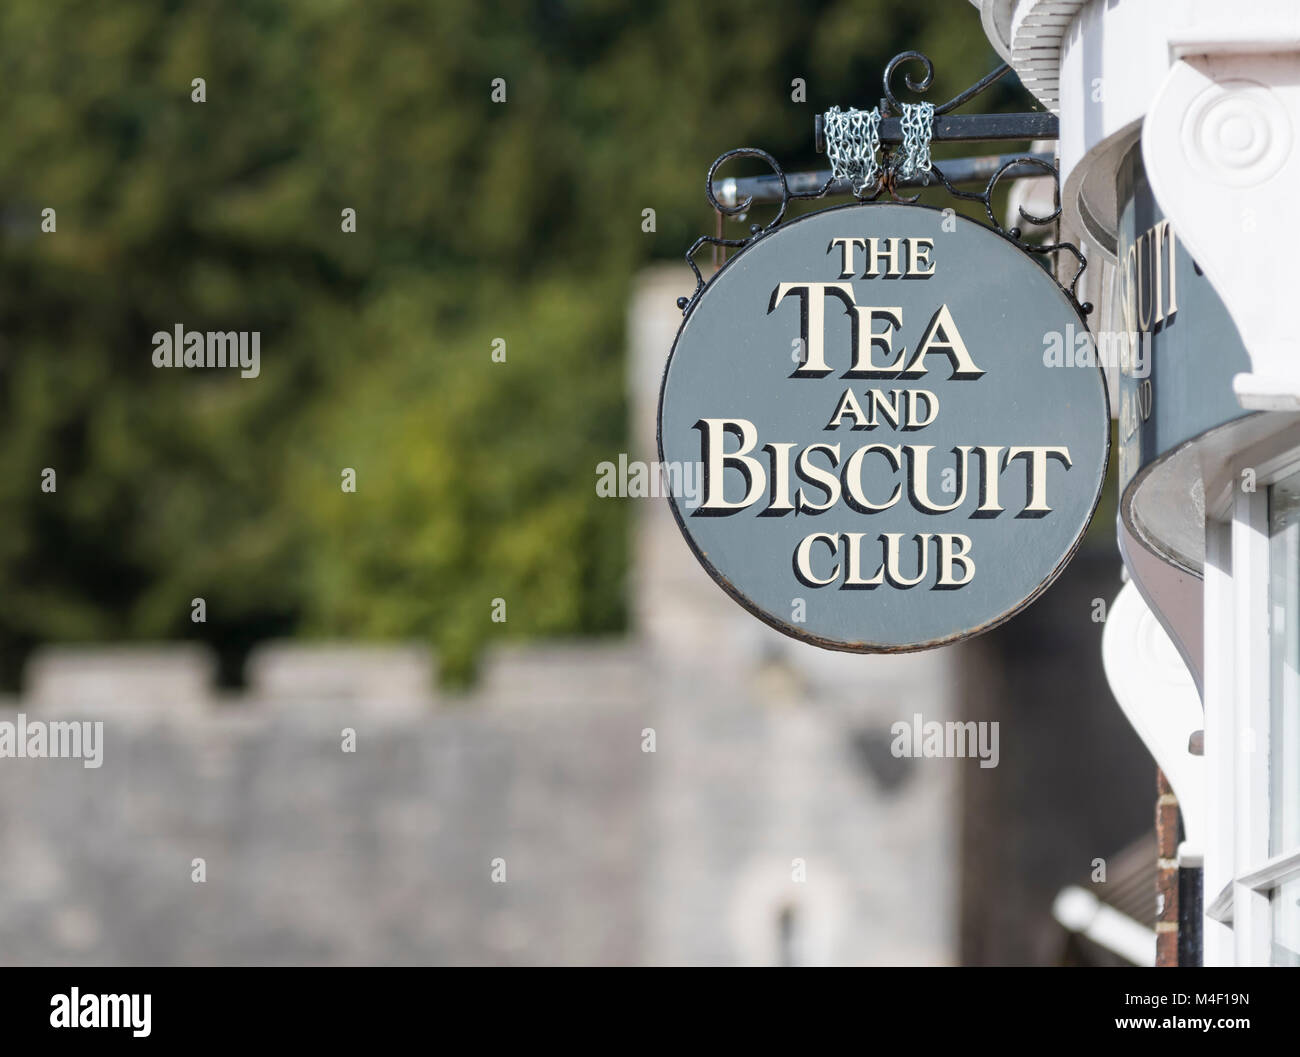 sign-above-the-tea-and-biscuit-club-cafe-in-arundel-west-sussex-england-M4F19N.jpg